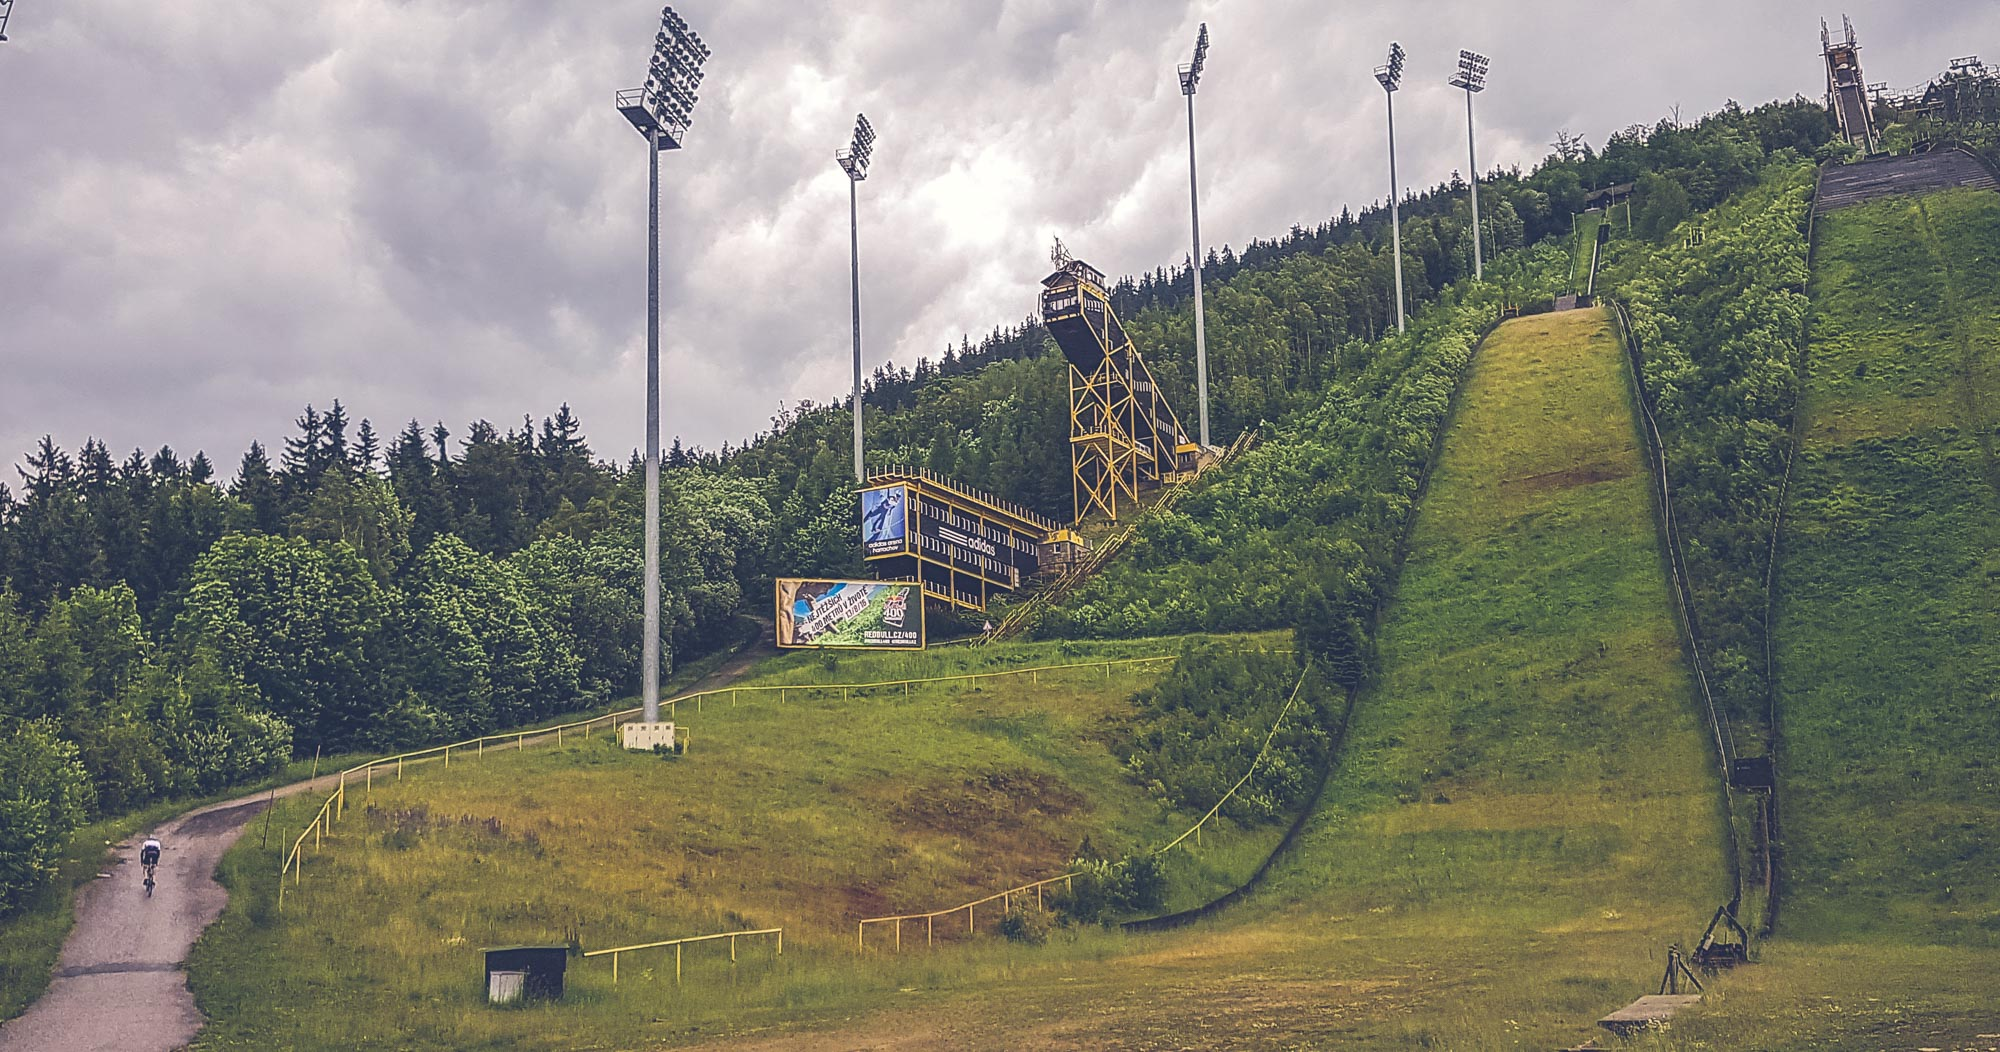 The Harrachov ski jump